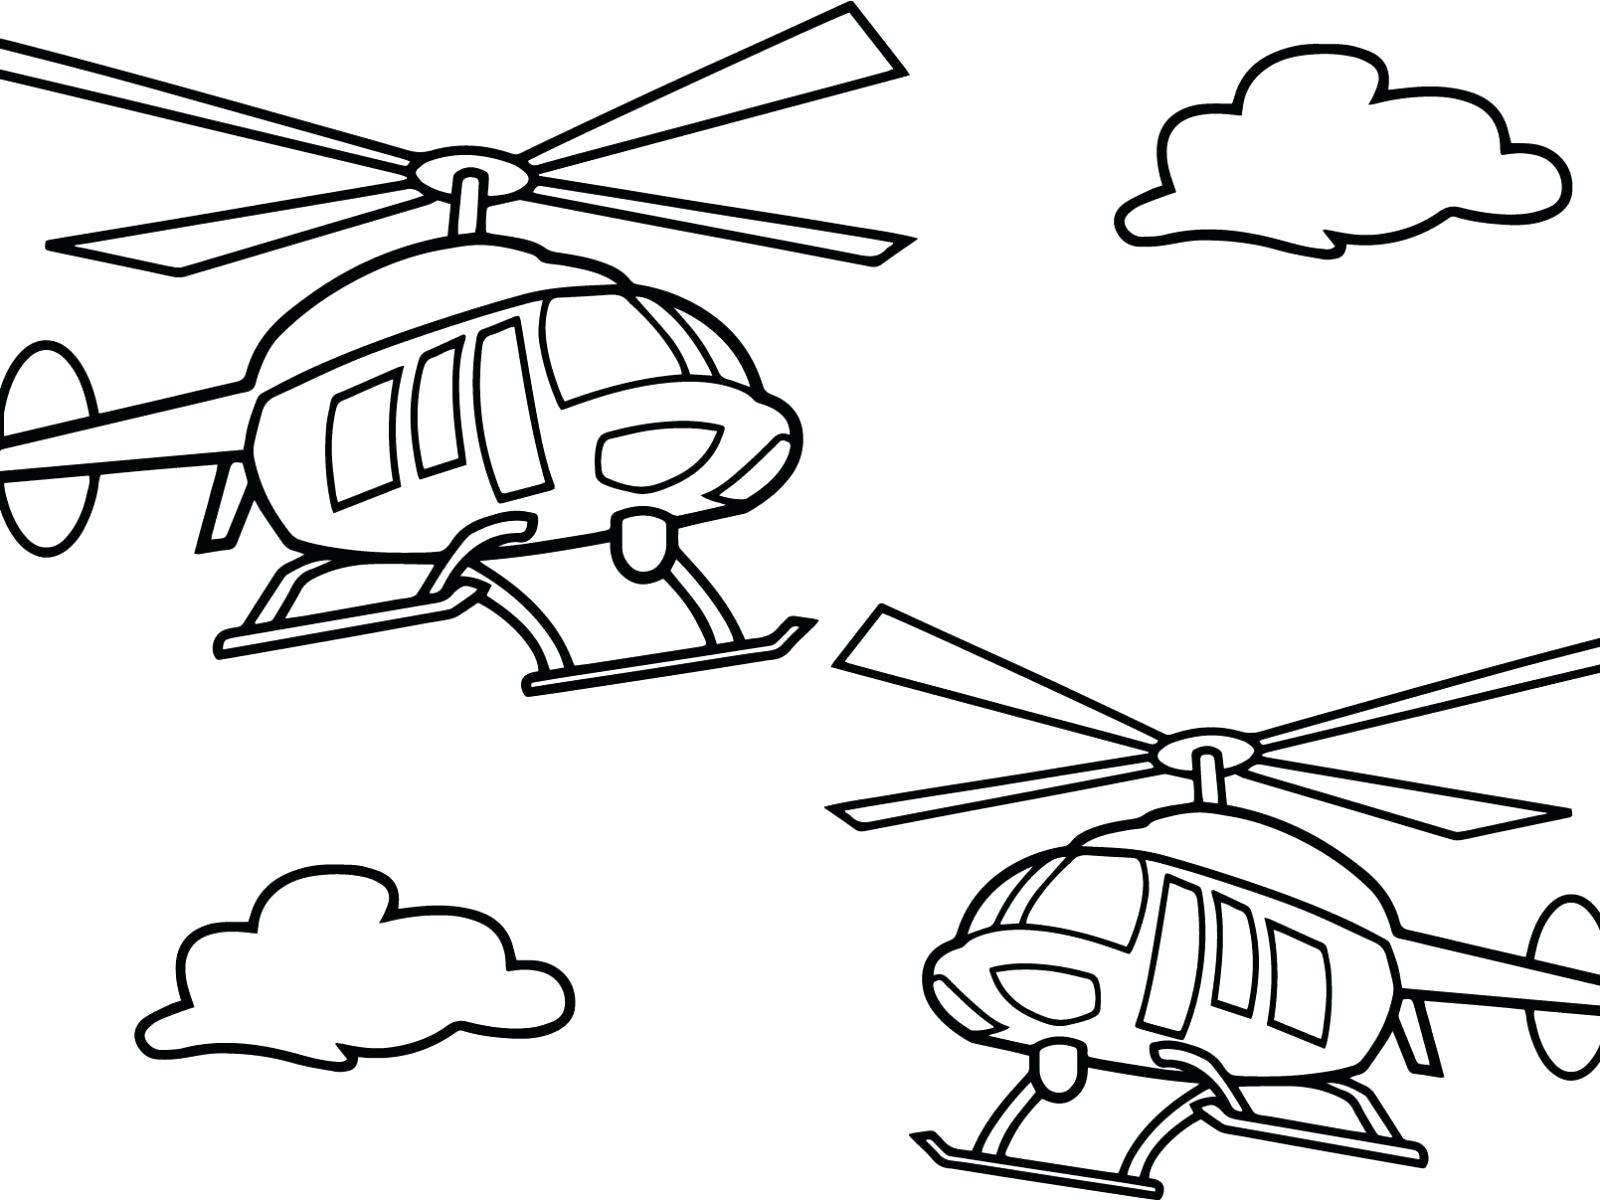 Huey Helicopter Drawing at GetDrawings.com | Free for personal use ...